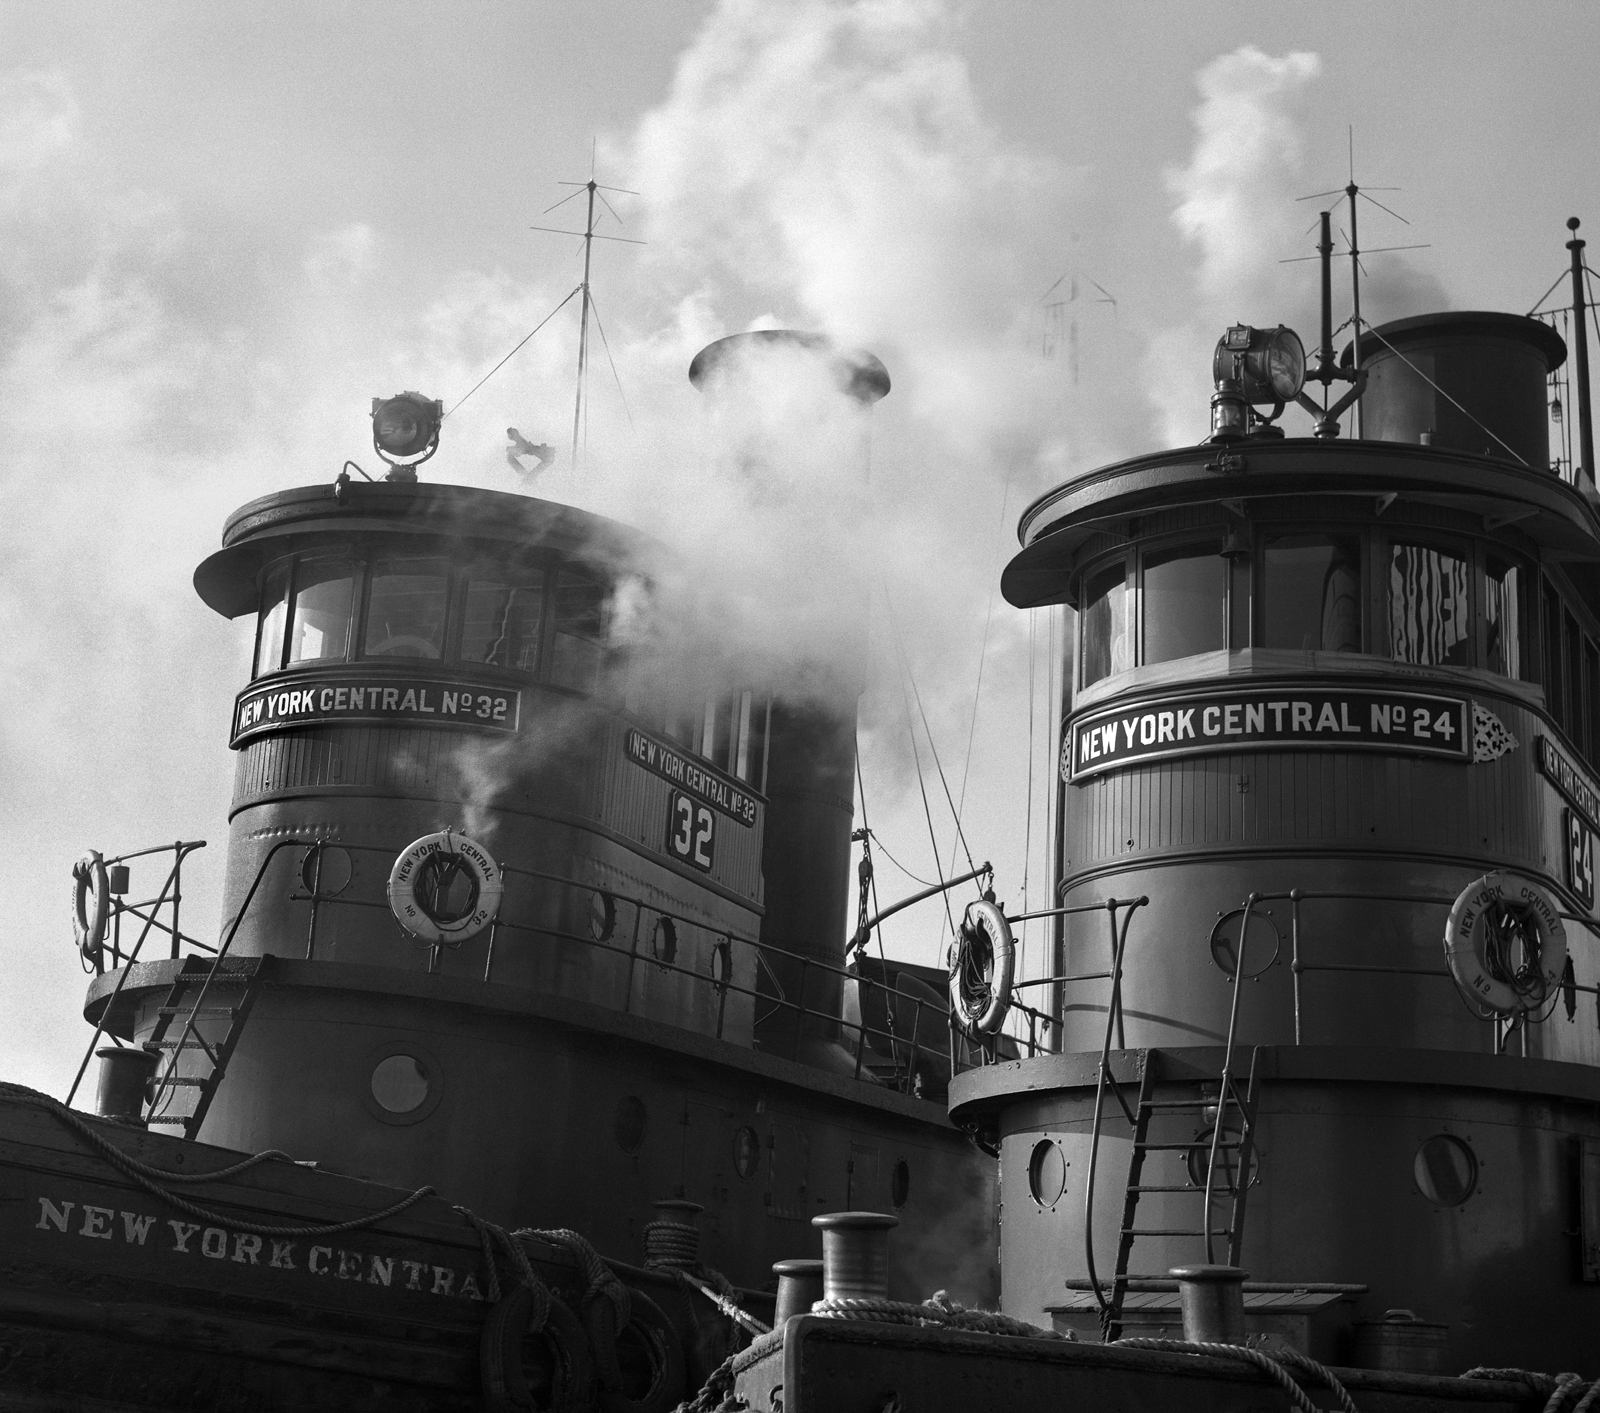 New York Central Steam Tugs, Weehawken, New Jersey, 1963